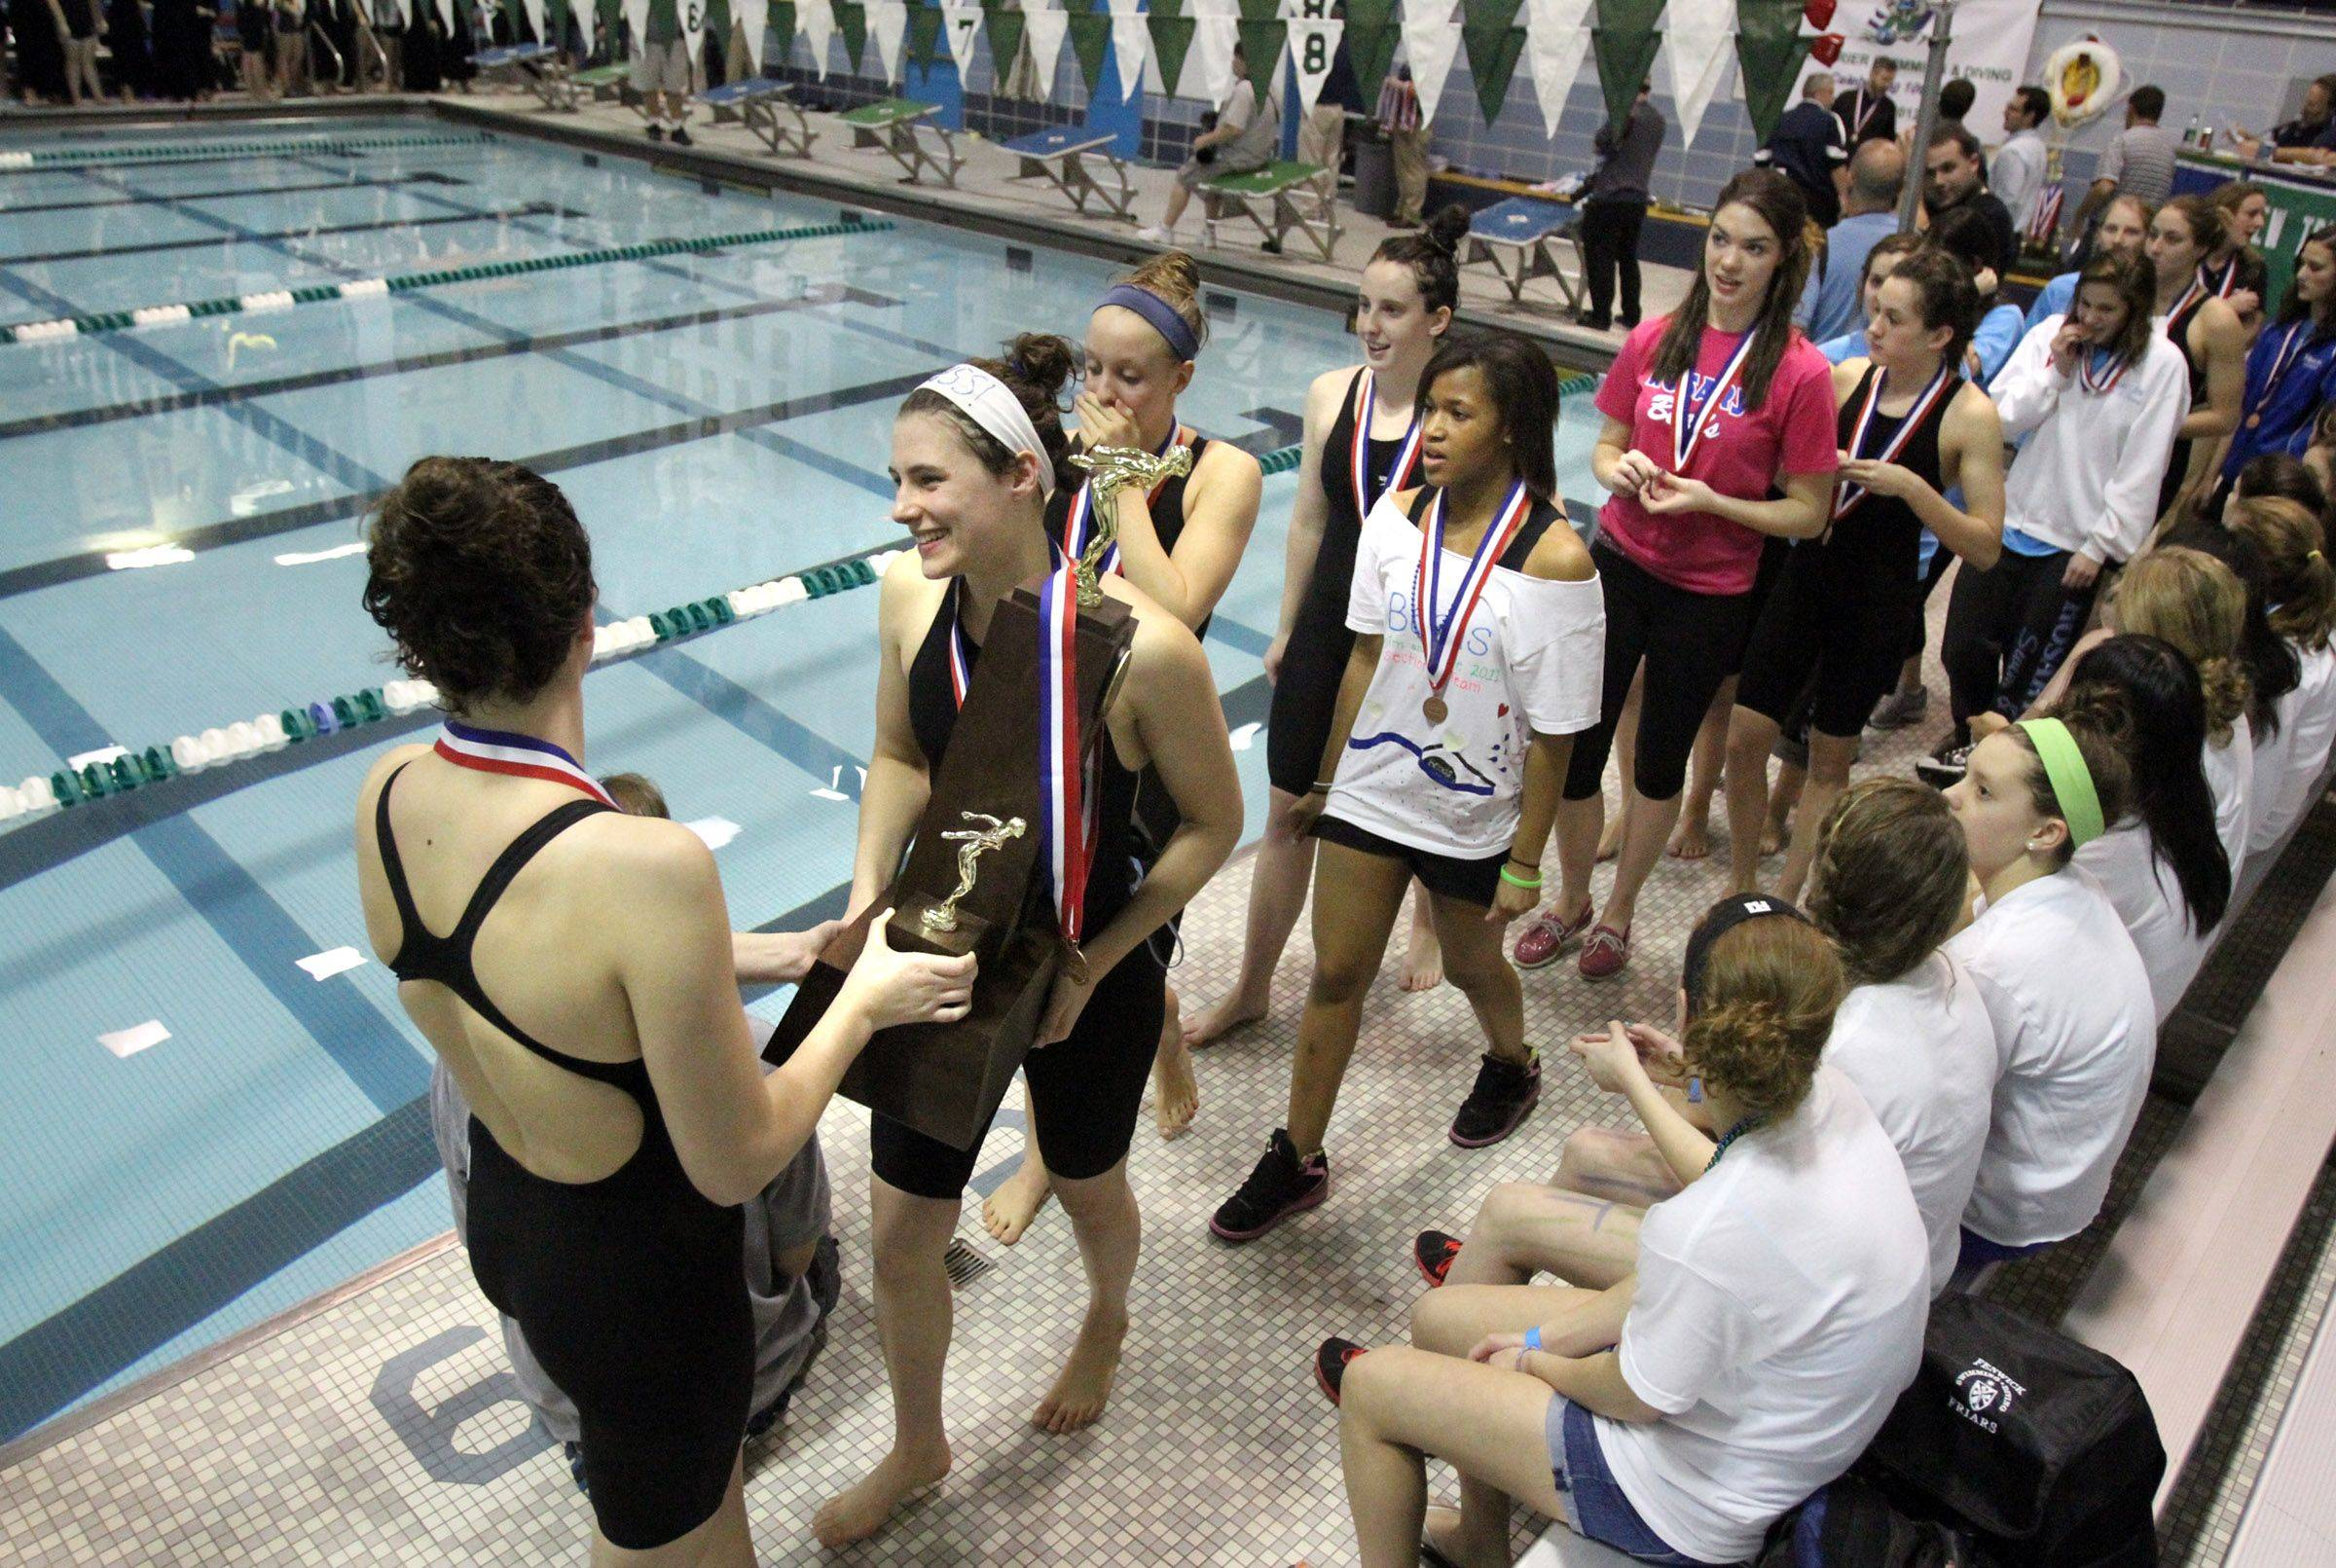 Rosary walks around the pool with the third place team trophy at the IHSA state championships in Winnetka on Saturday, November 19th.